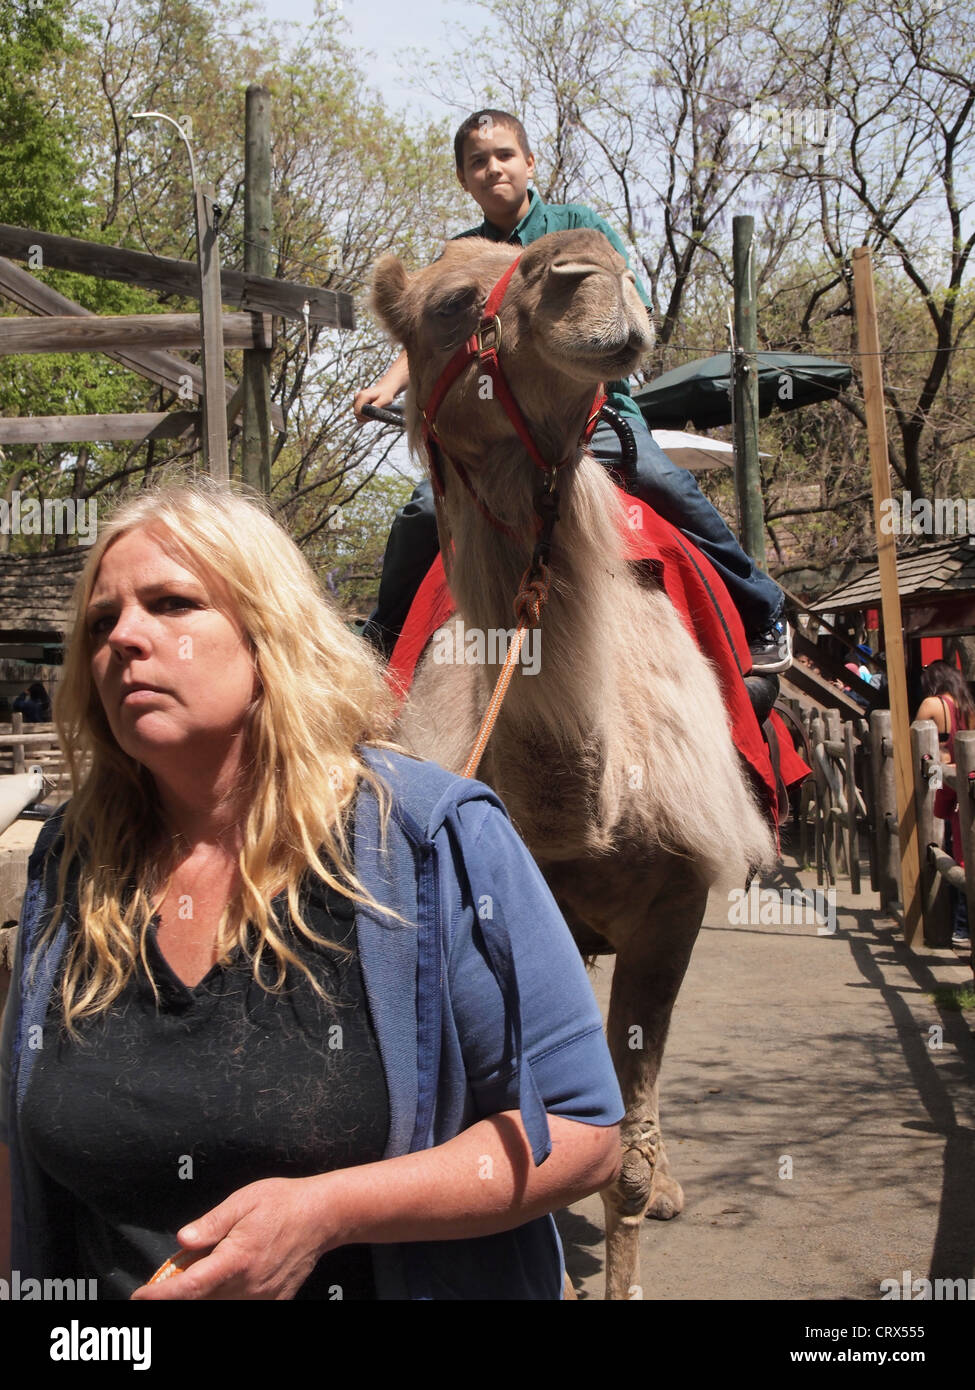 Woman Leading Camel With Boy Rider At The Camel Ride Bronx Zoo